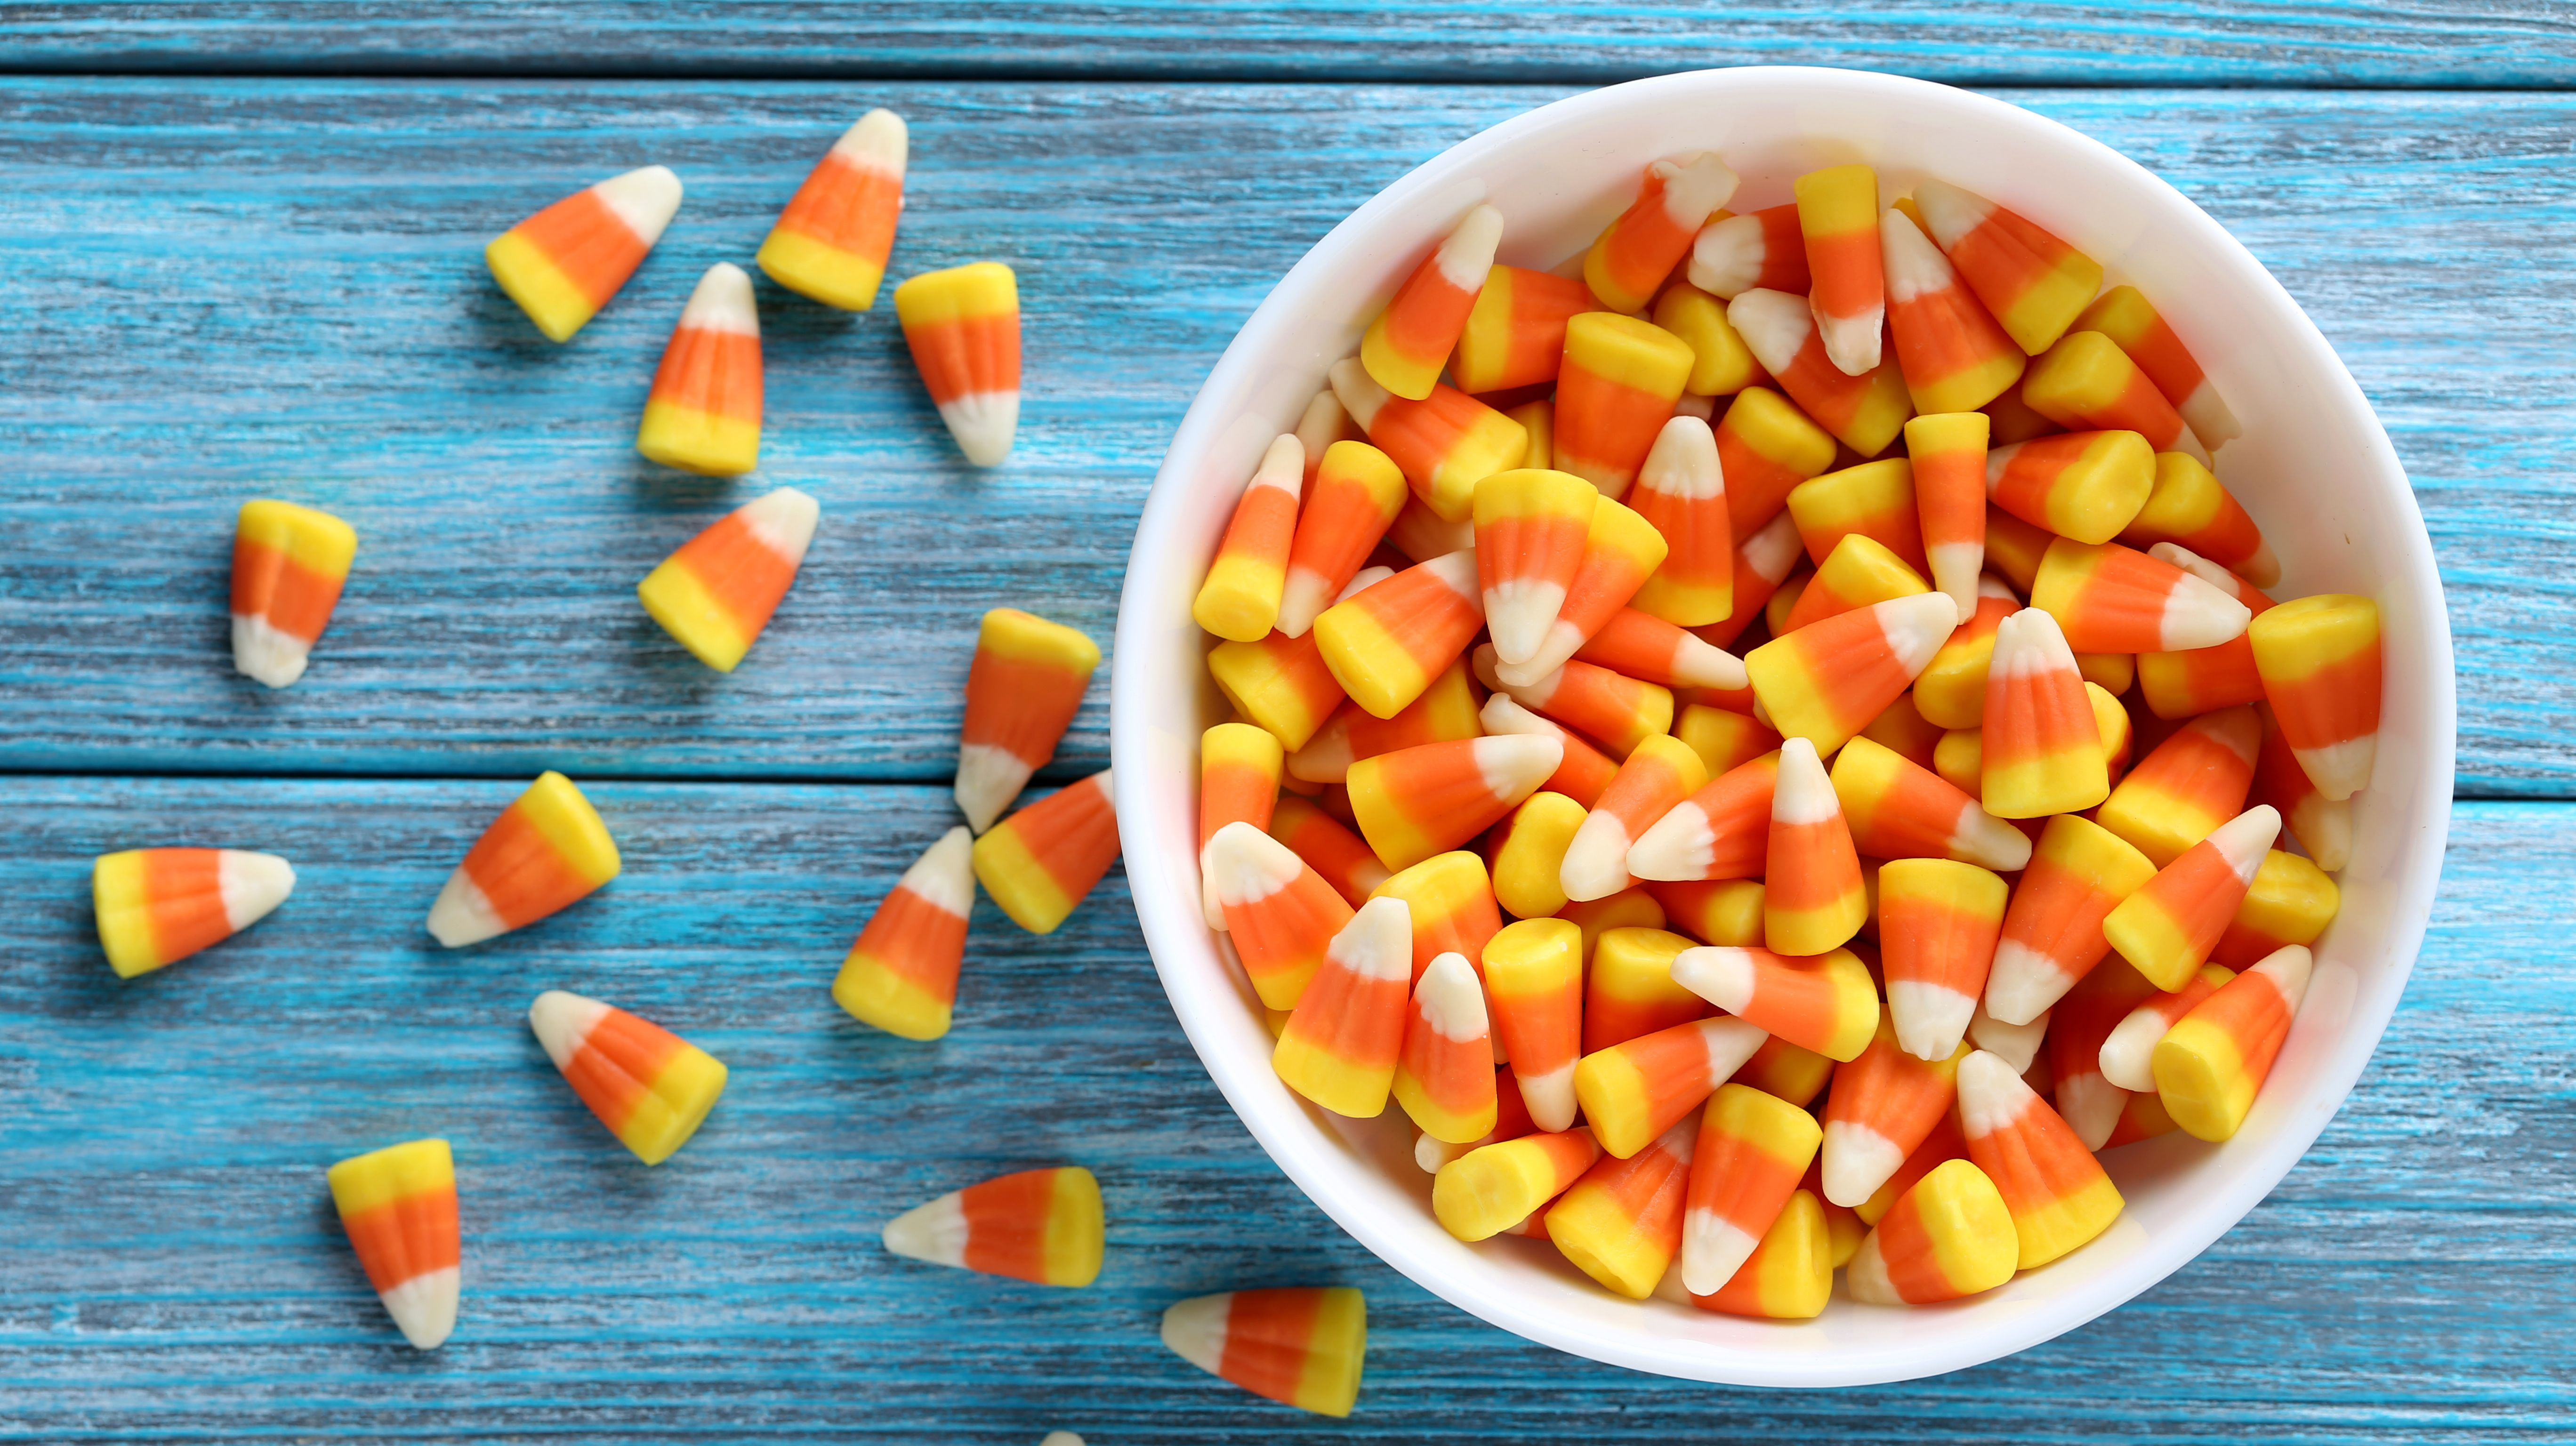 What Is Candy Corn Made Of Mental Floss